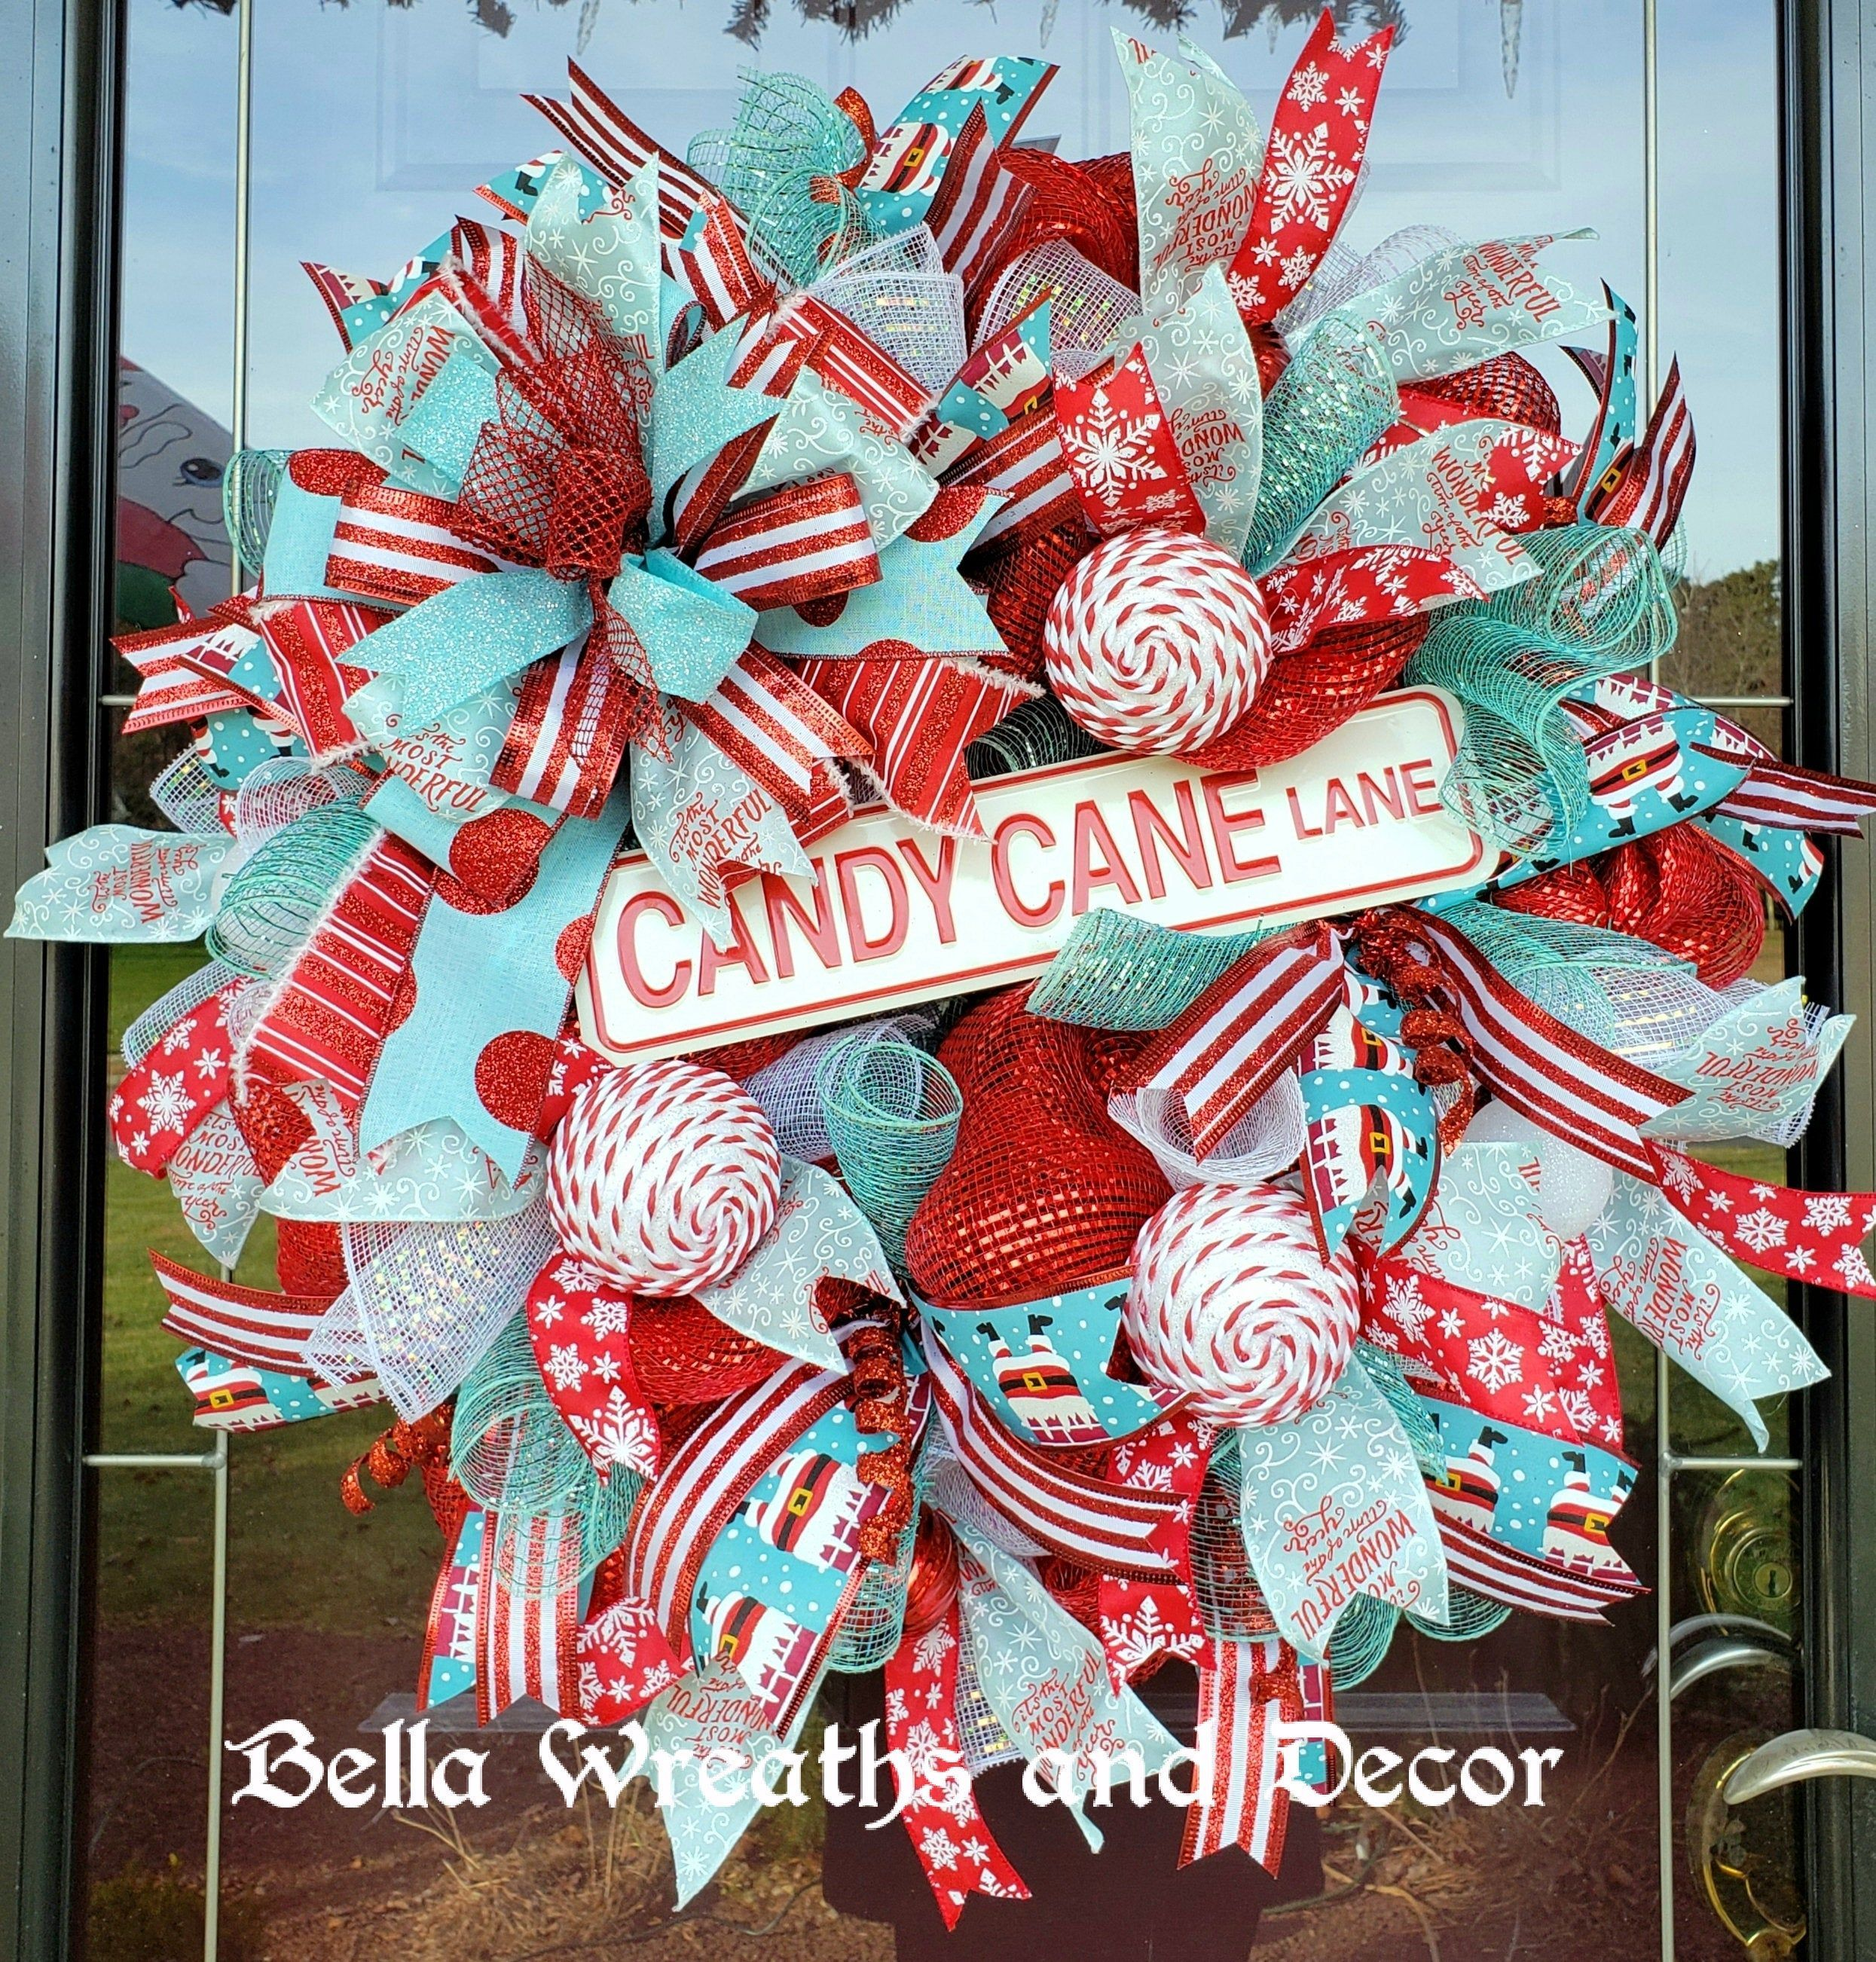 candy cane lane sign Google Search Holiday cheer